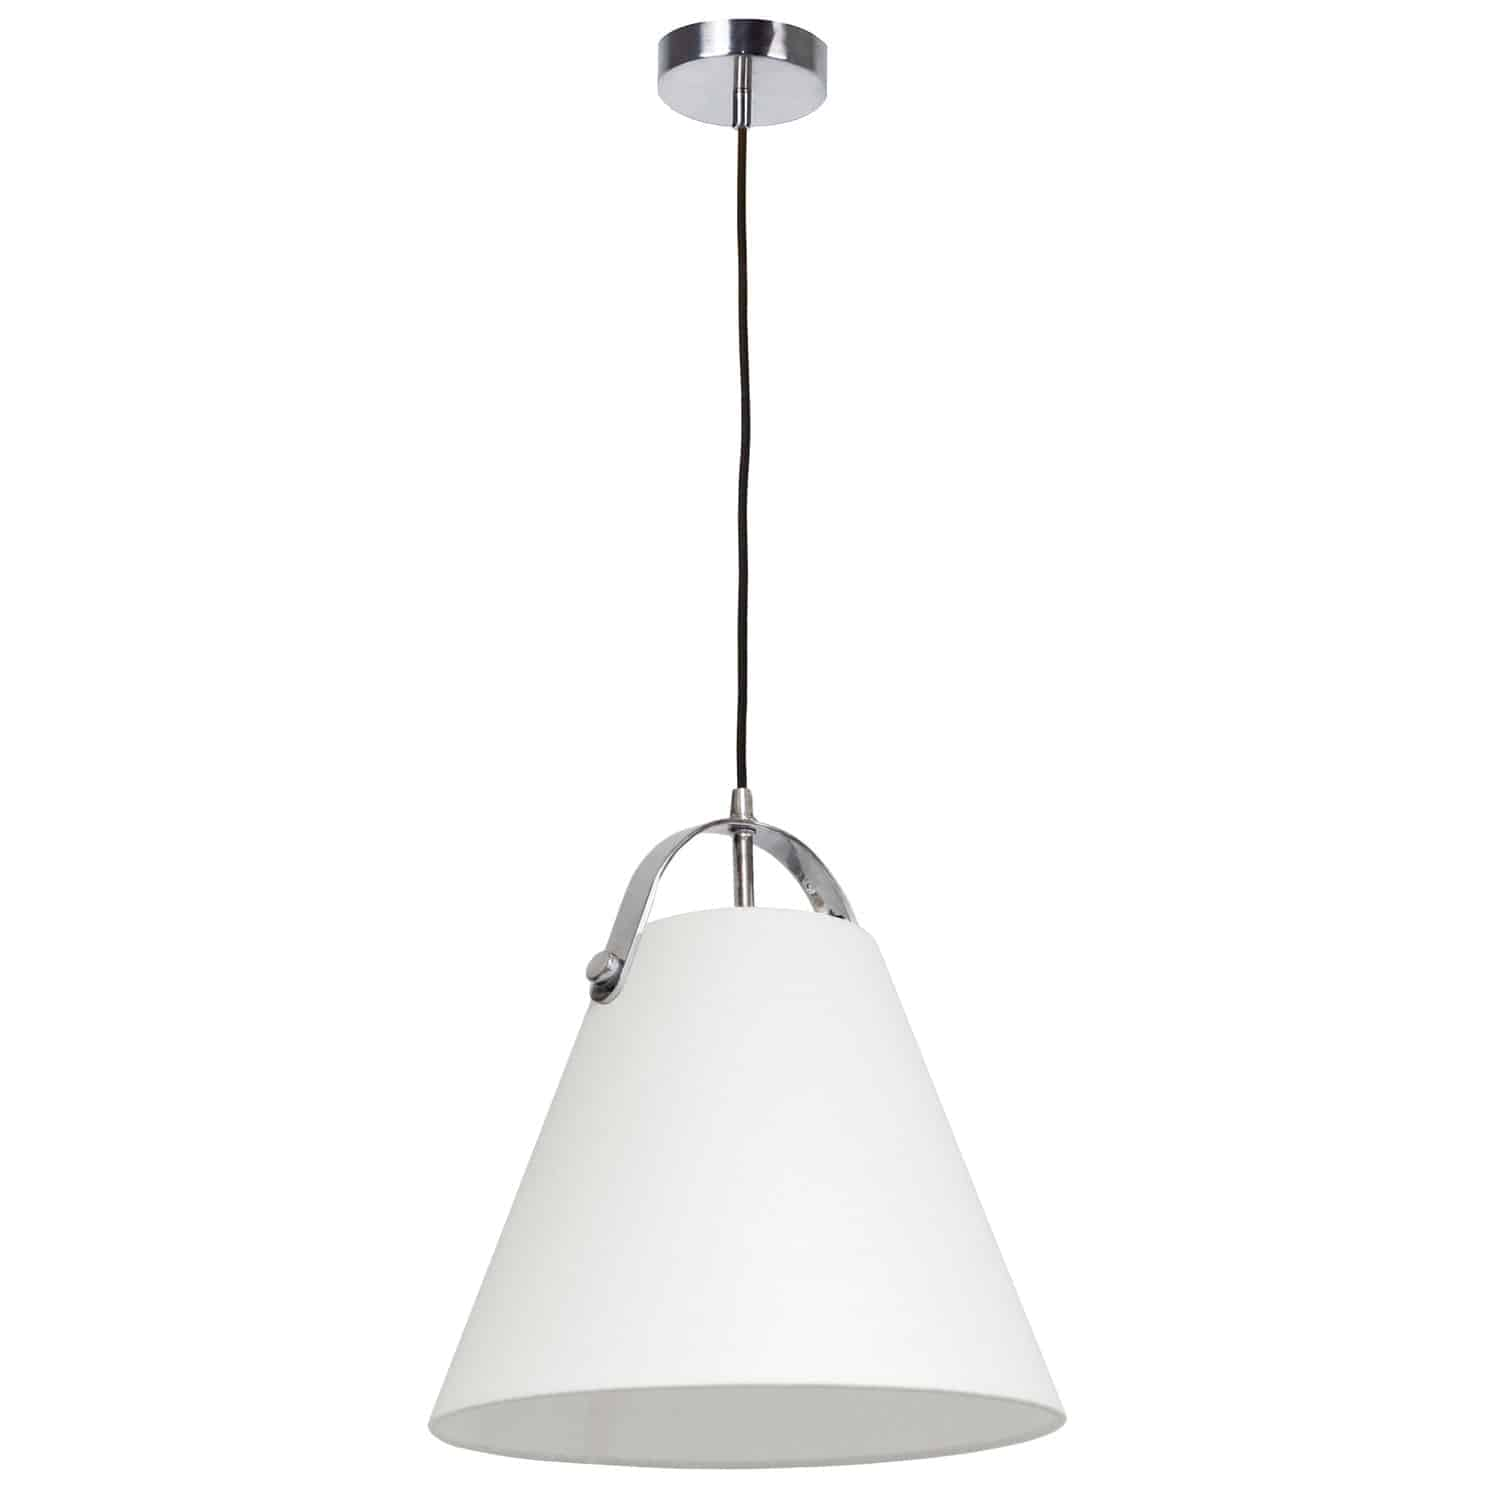 1 Light Emperor Pendant Polished Chrome with Off White Shade